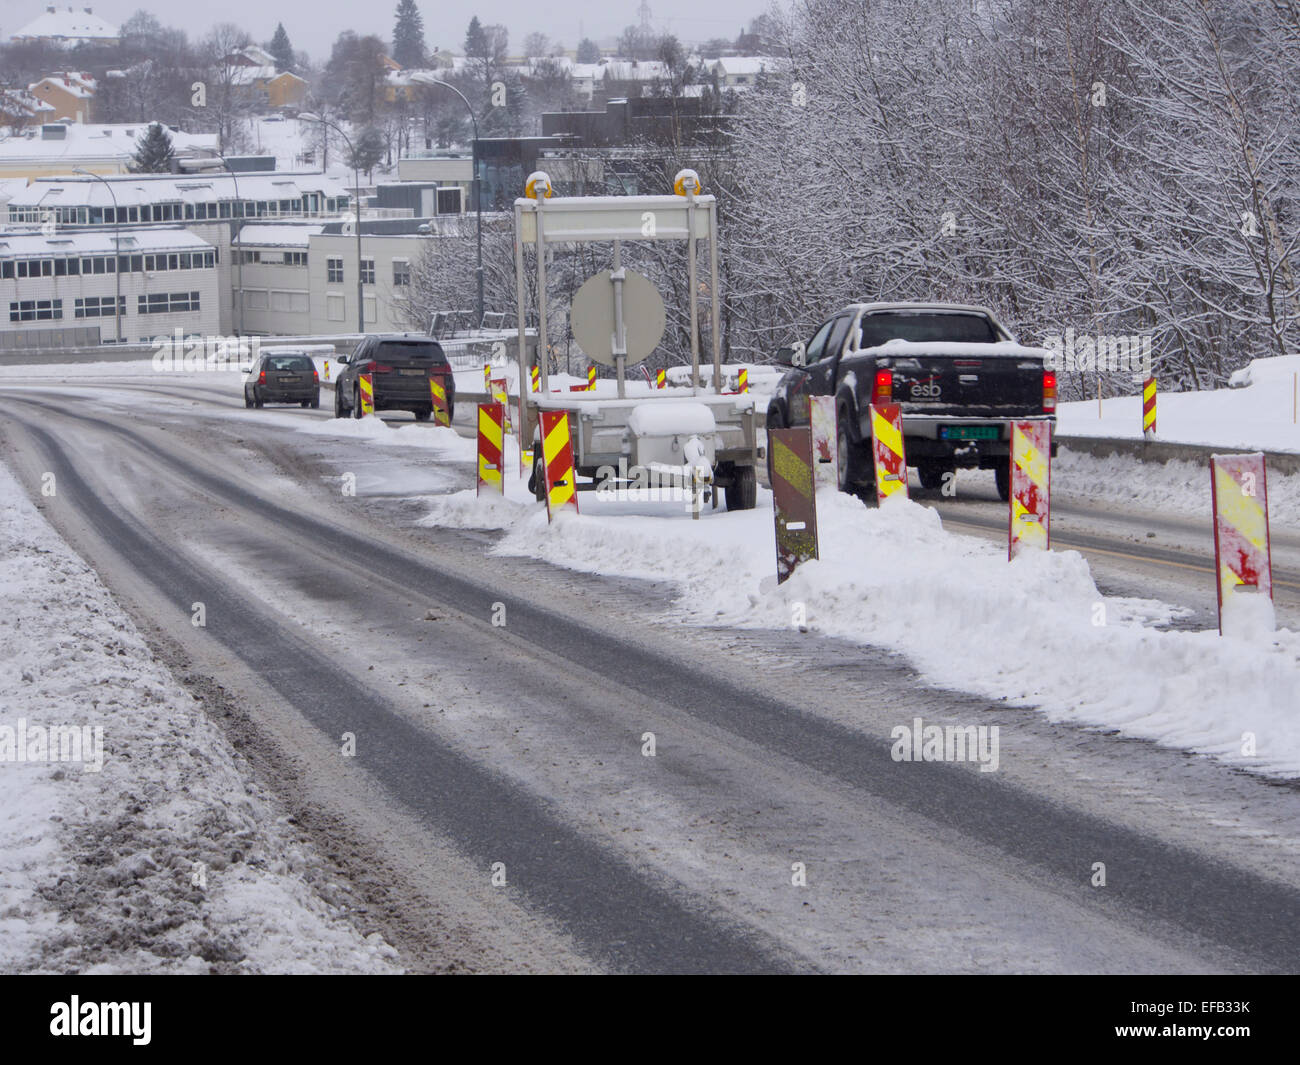 Winter roadworks, necessary but snow brings extra challenges for motorists and workers alike, Oslo Norway - Stock Image